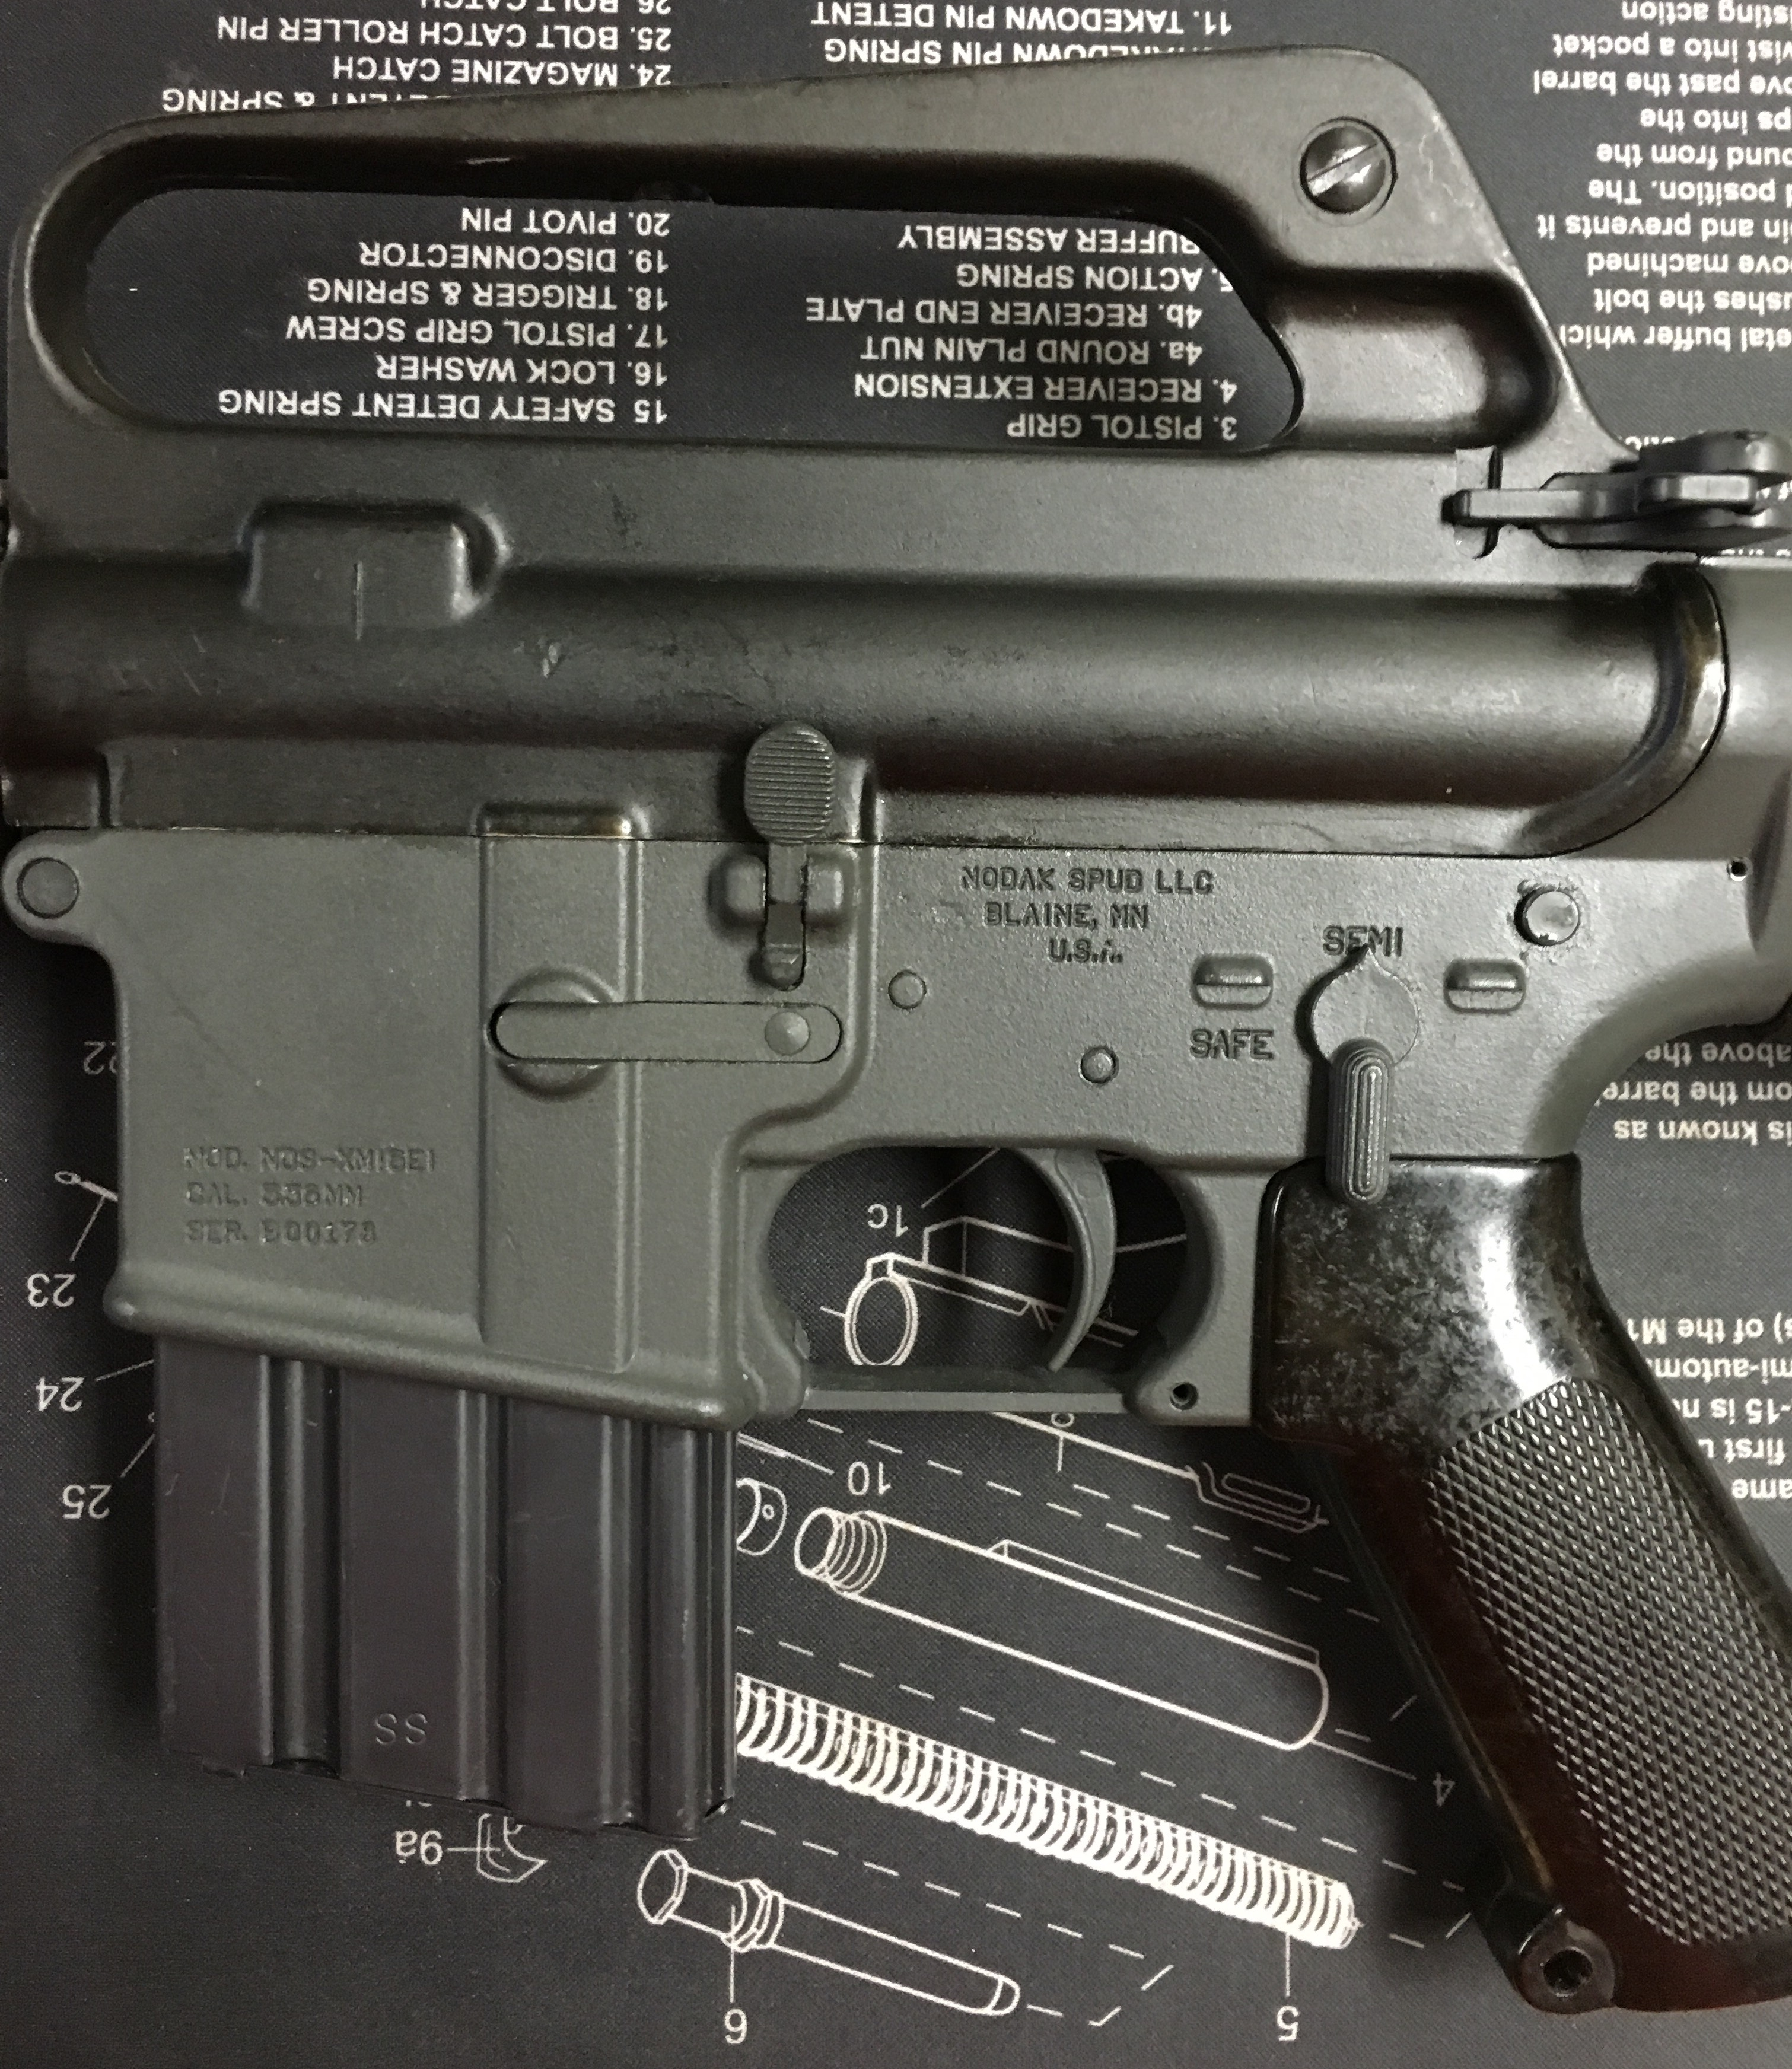 M16 R Images - Reverse Search